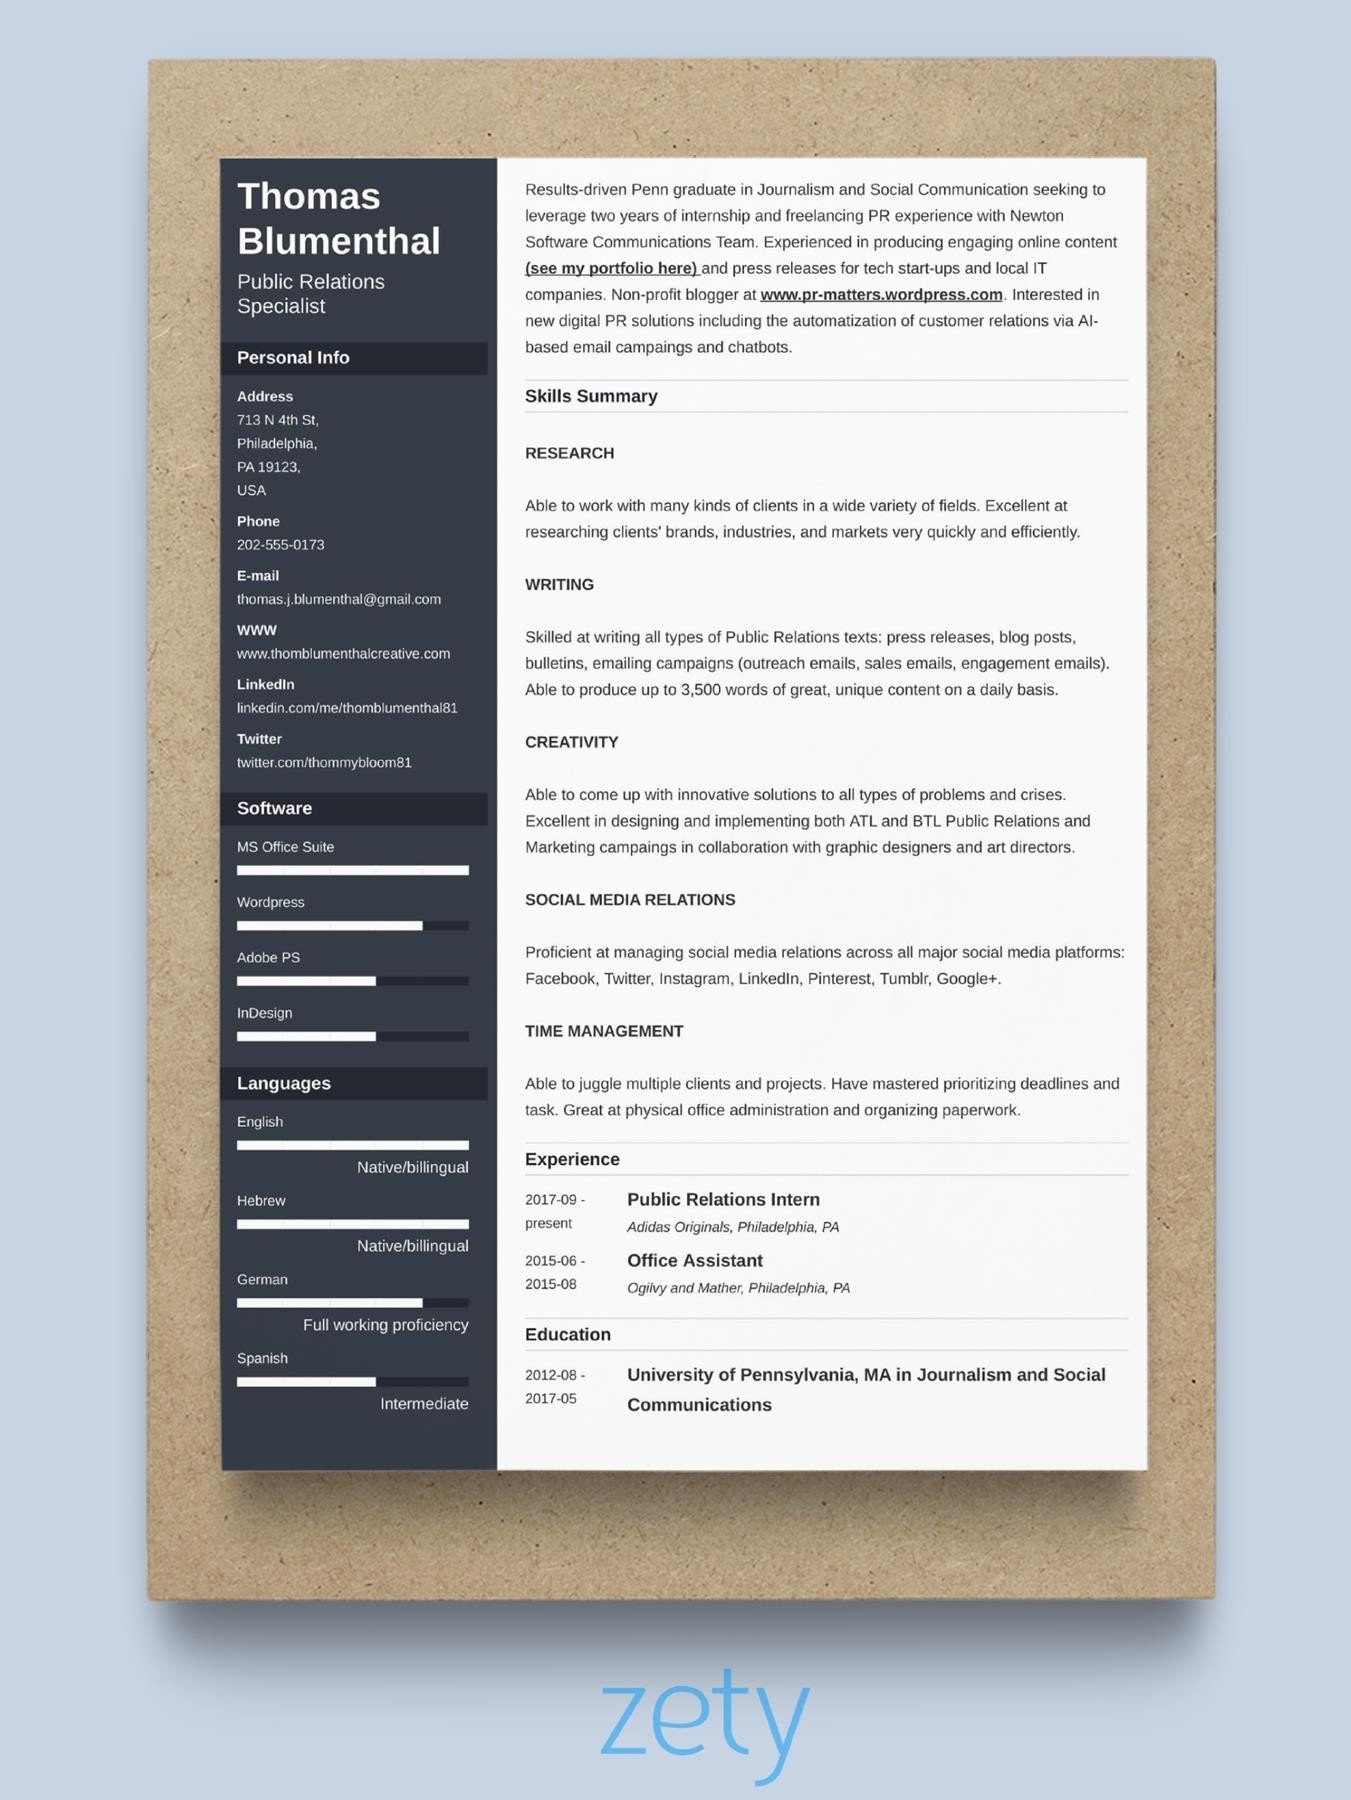 resume structure to organize plain text pros and cons format now trial careerbuilder Resume Plain Text Resume Pros And Cons